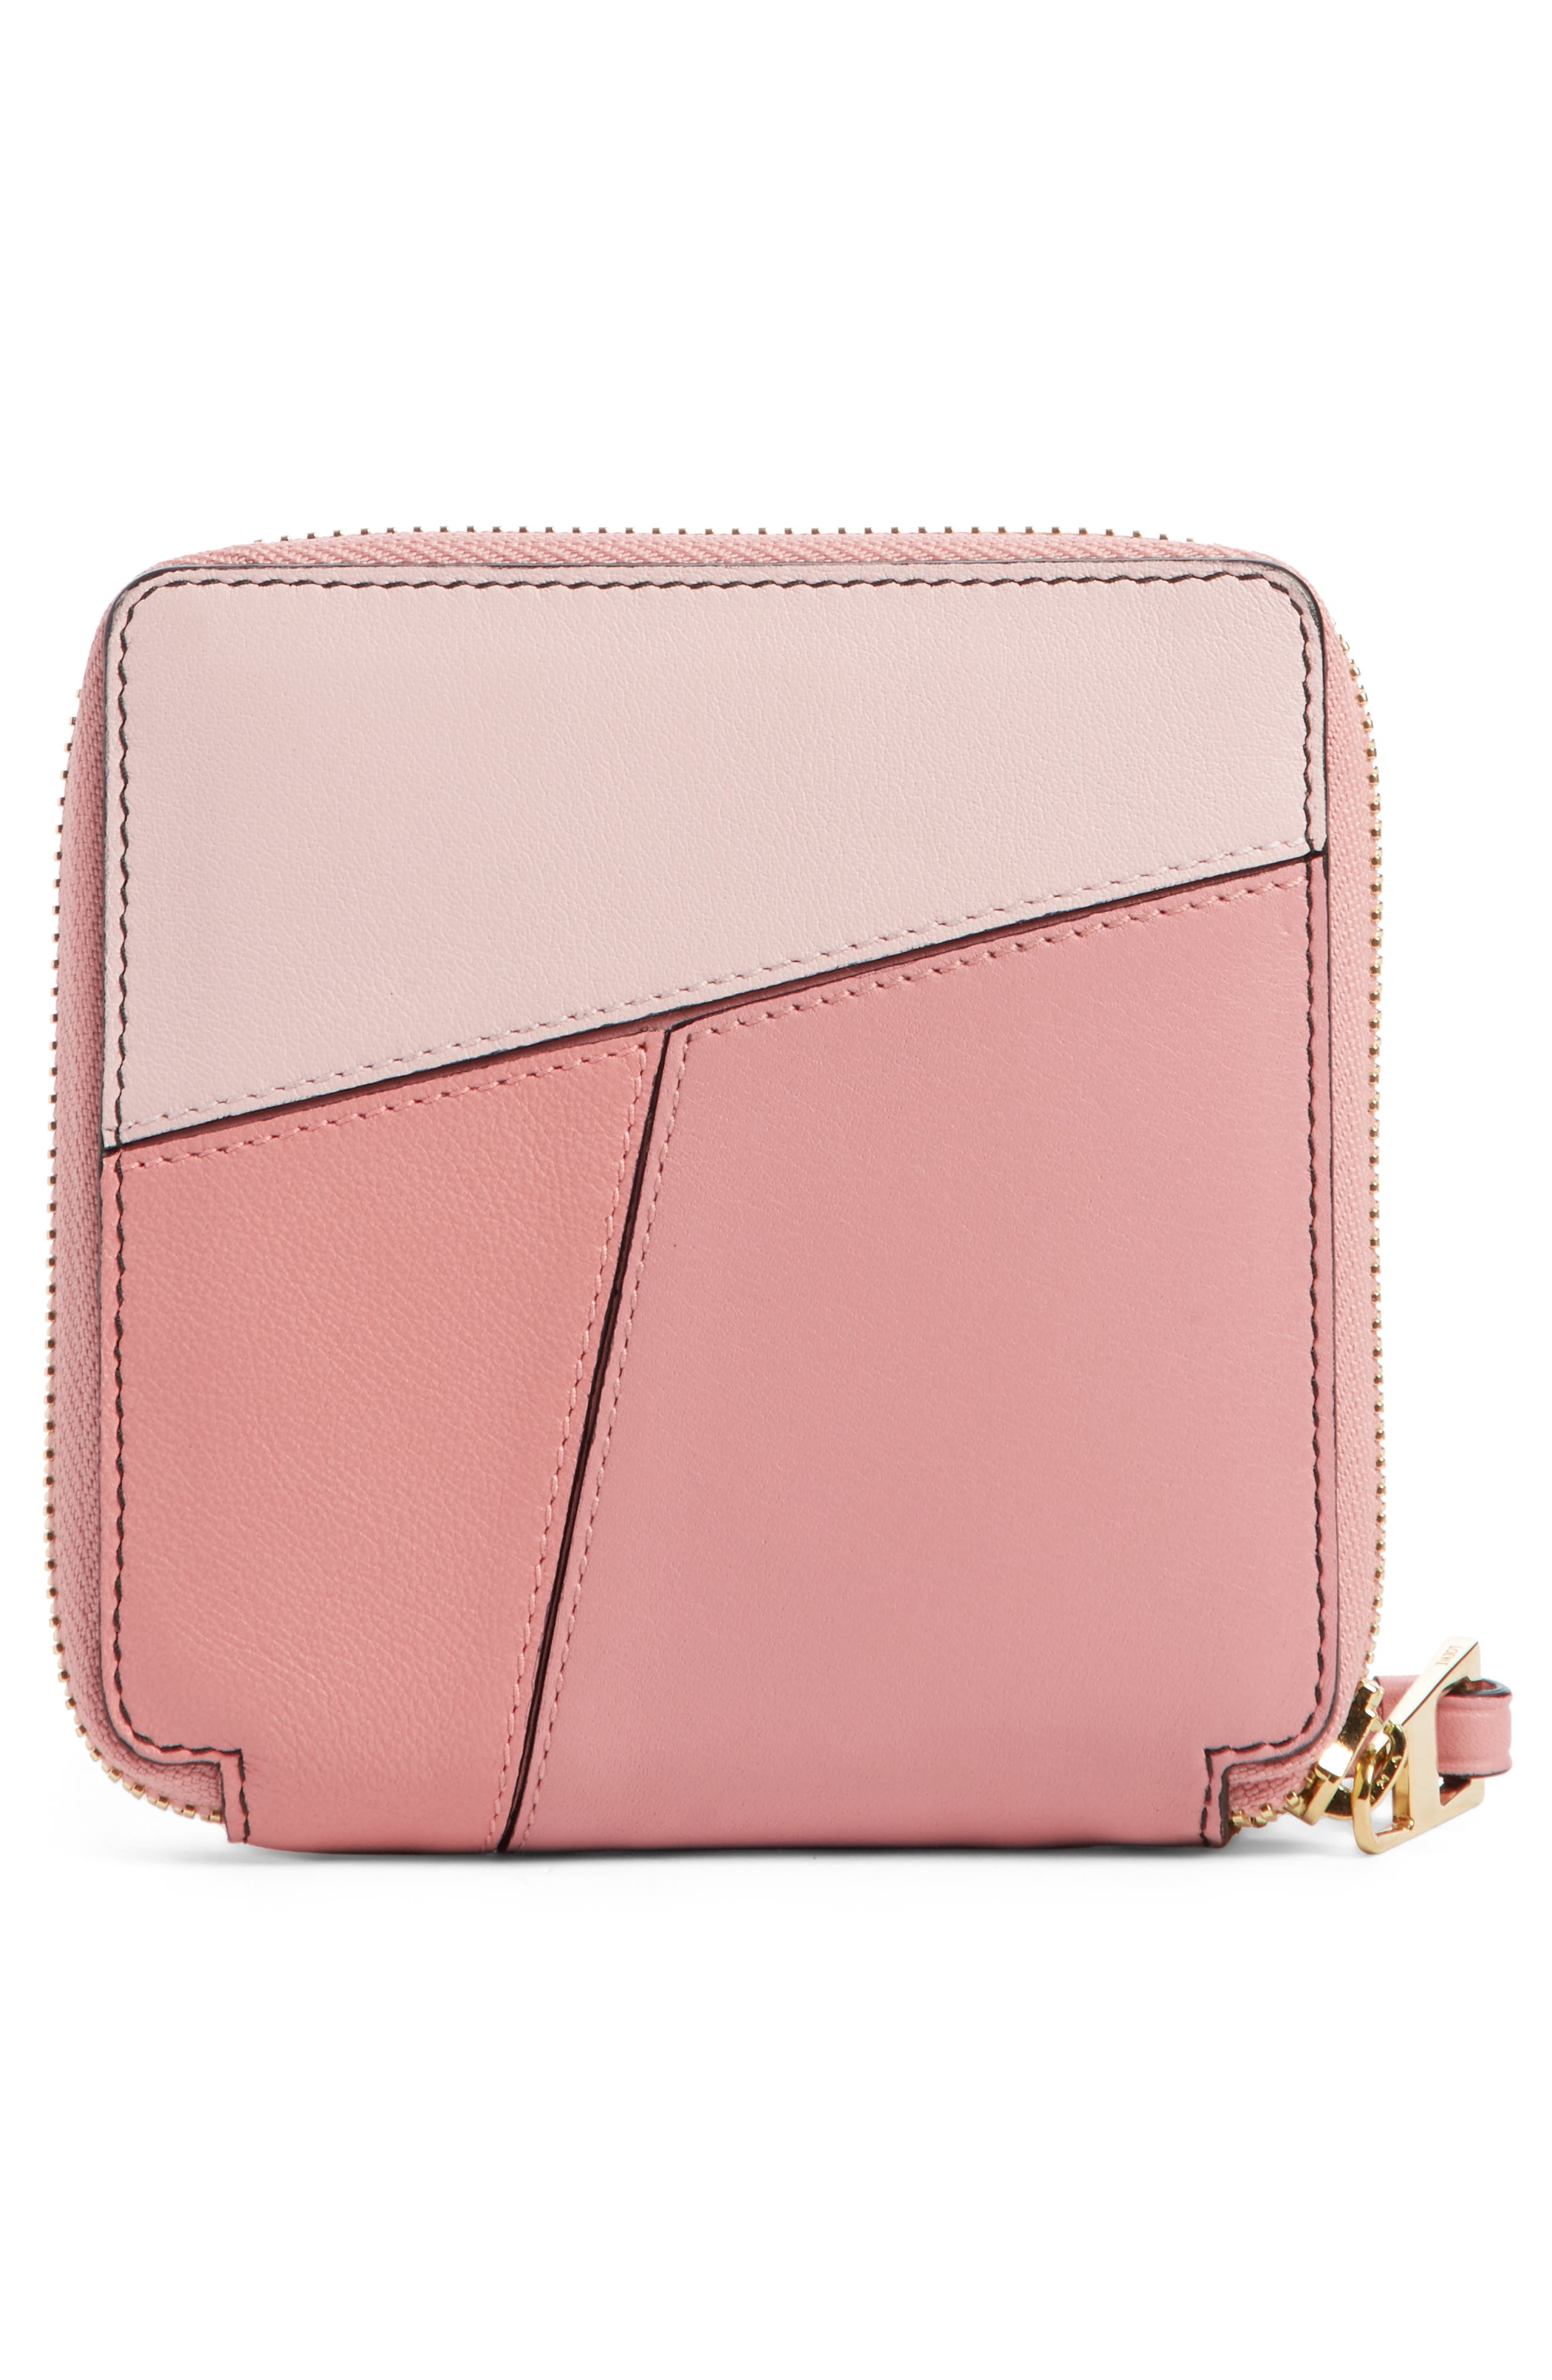 Colorblock Puzzle French Wallet,                             Alternate thumbnail 3, color,                             MULTI PINK